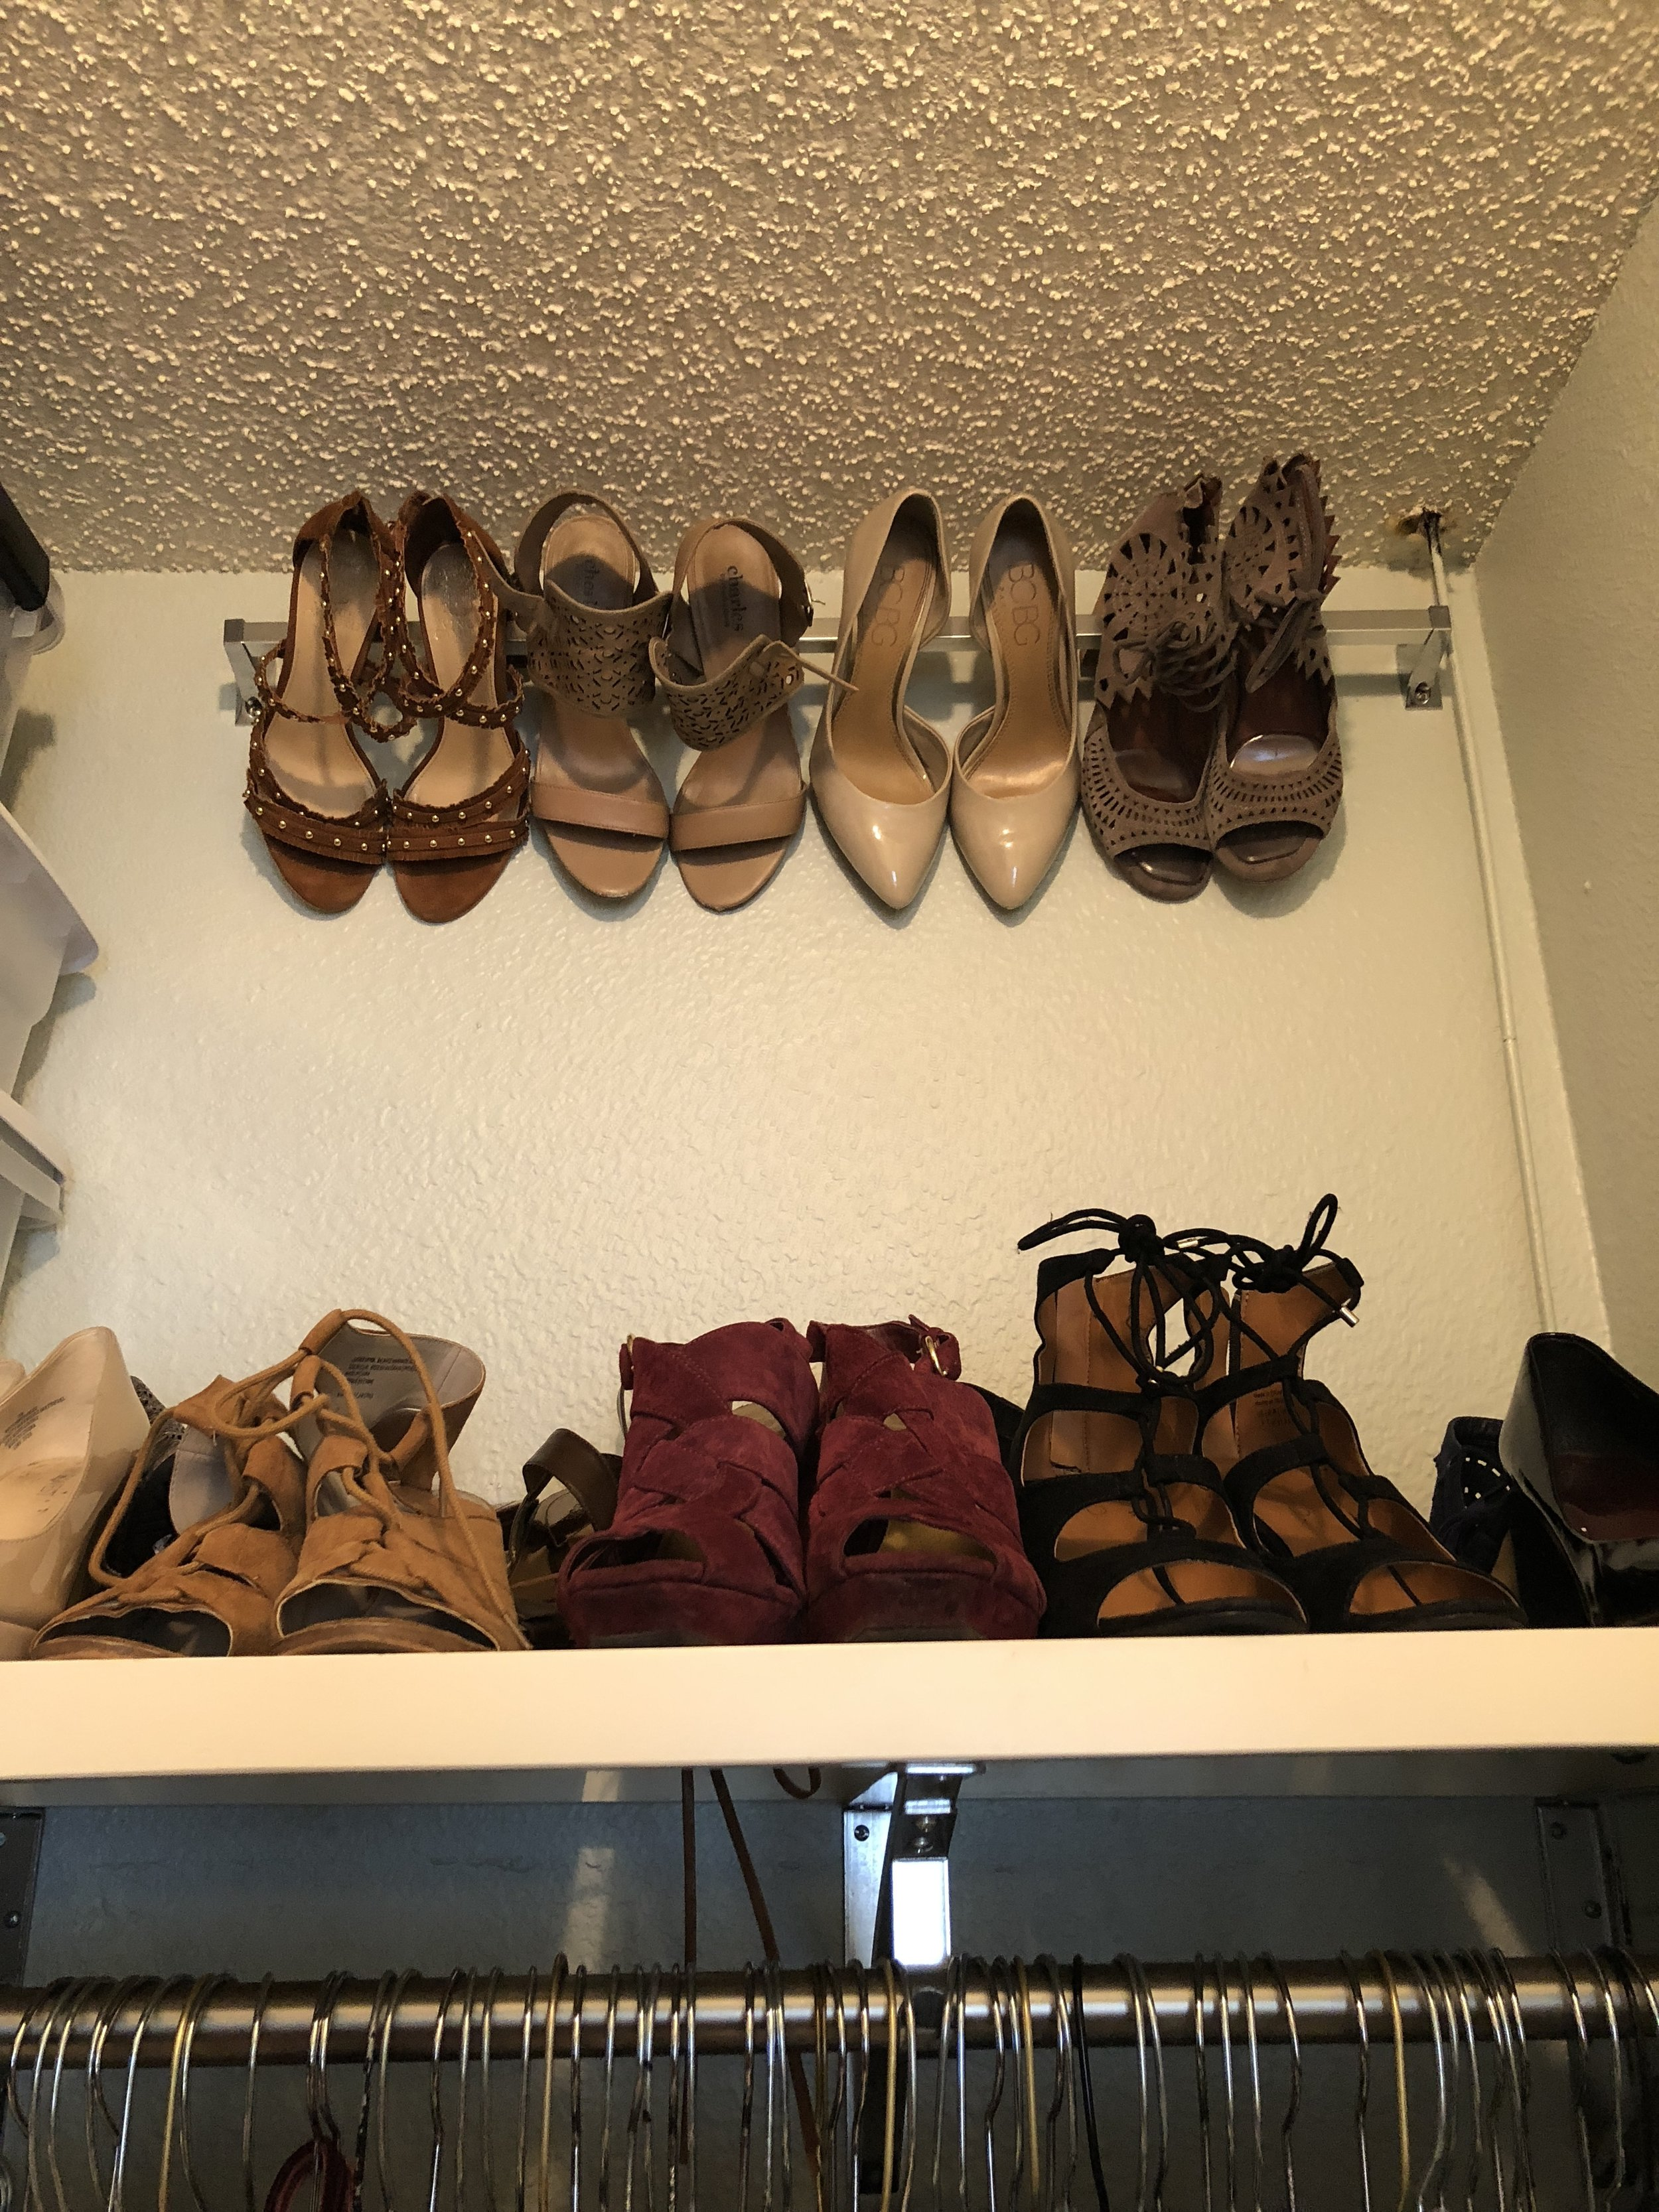 Shoes  Need extra shoe storage ladies? Try hanging a towel rod six inches from the ceiling and hook heels over that you don't use often. Men, try installing floating shelves.